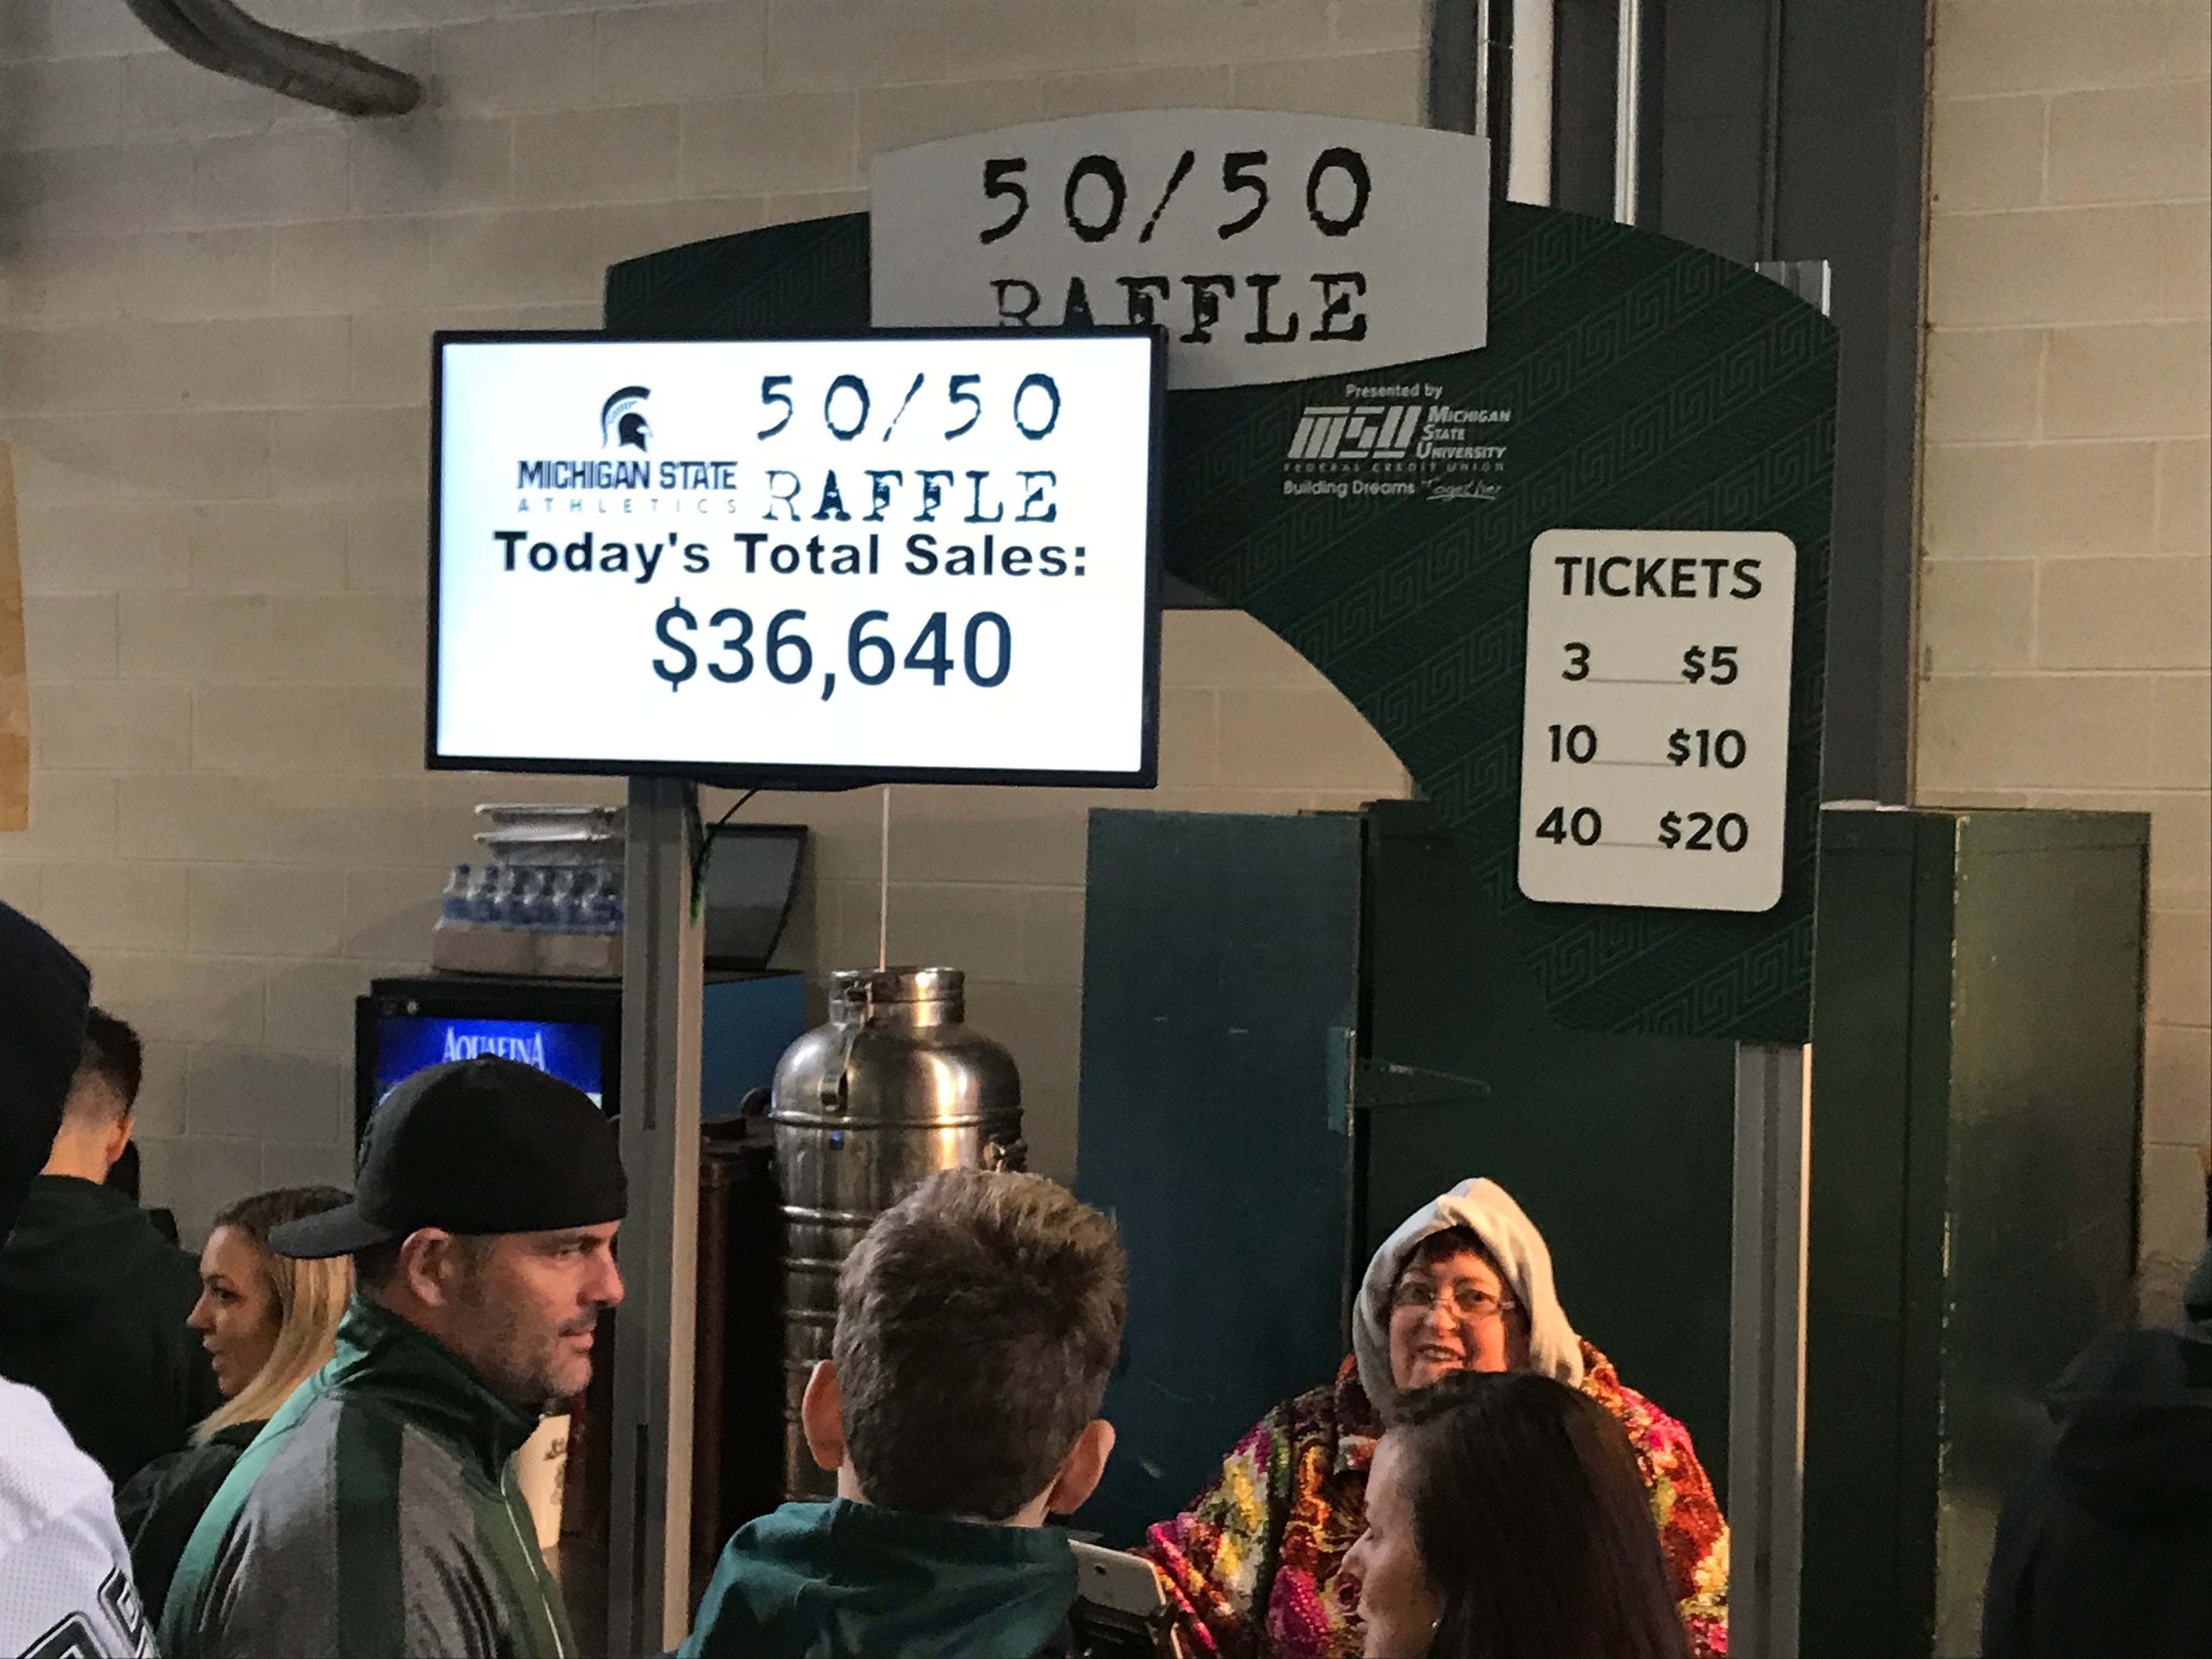 Fans of Michigan State football and other spectators can purchase 50/50 raffle tickets at Spartan Stadium during games.